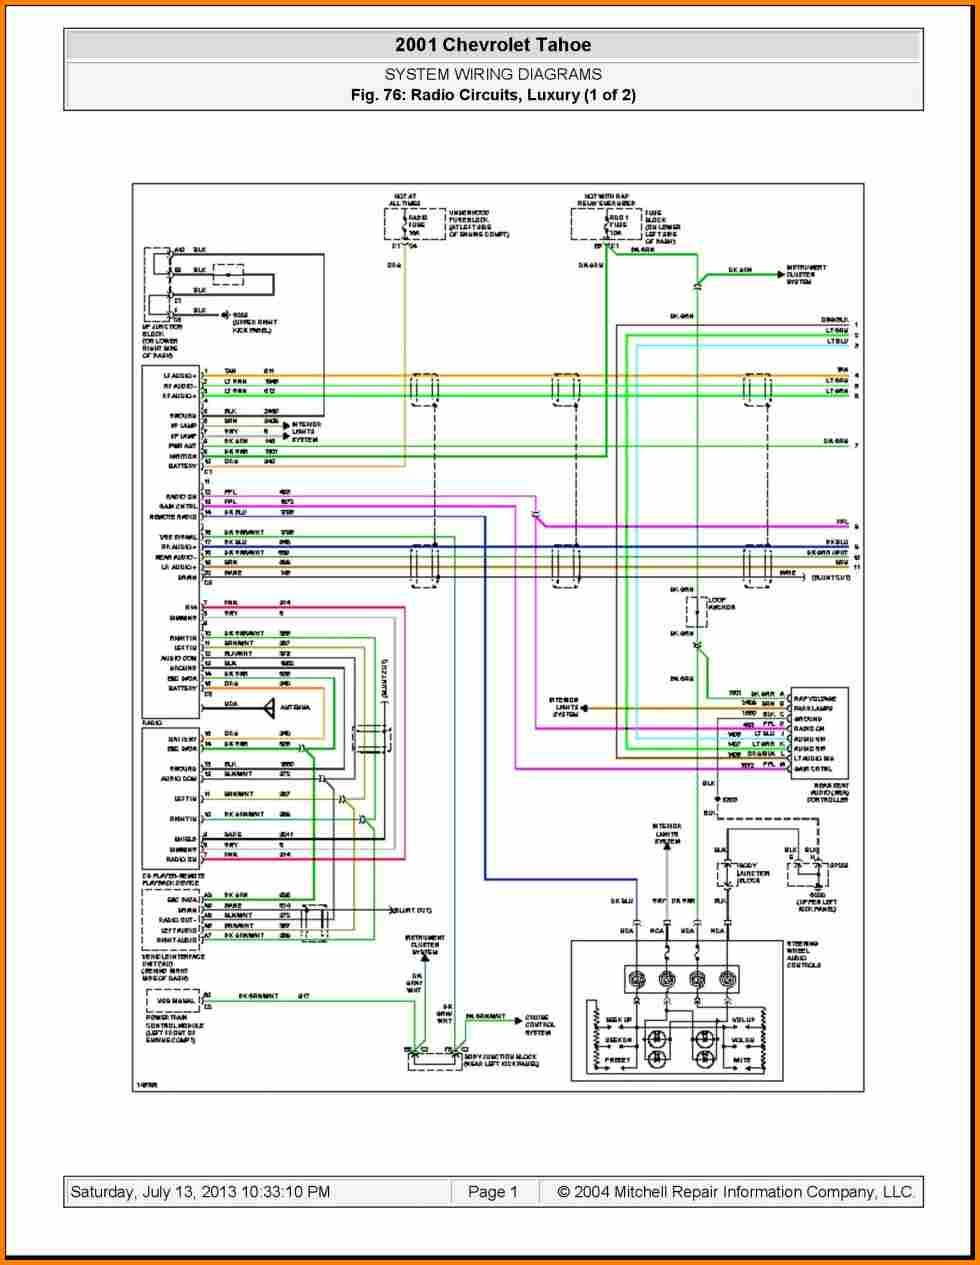 Bose Wire Diagram 2007 Armada Wiring Library 03 G35 Diagrams Elegant Amp Image Gm 2003 Chevy